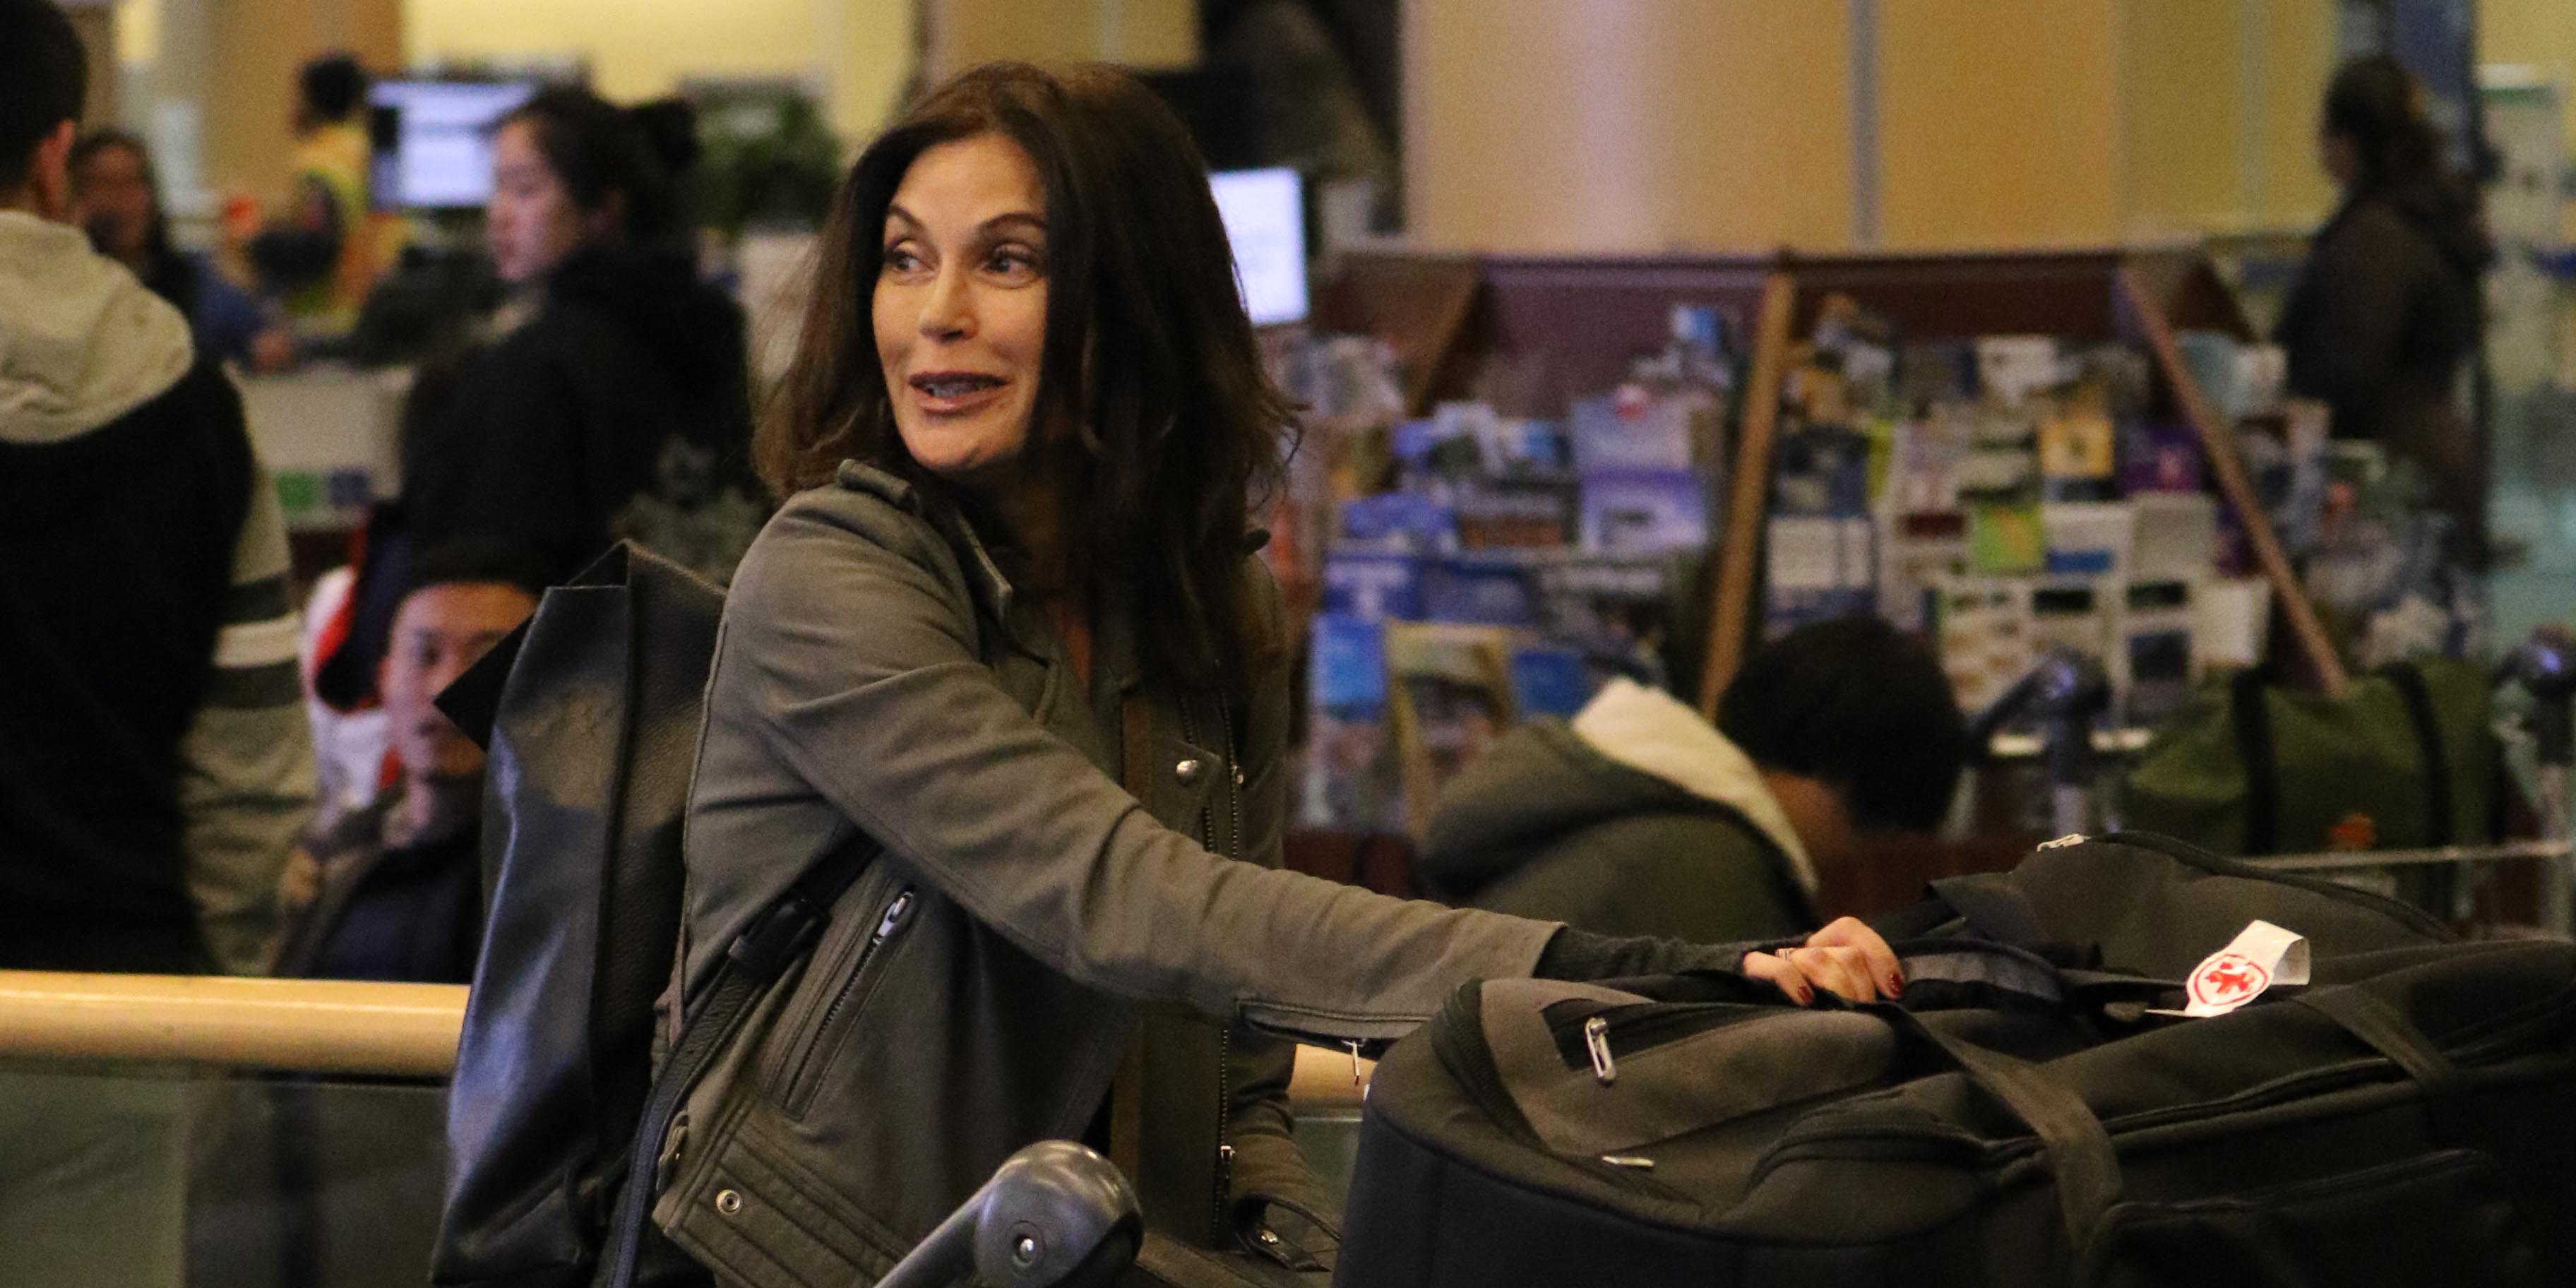 Teri Hatcher arrives in Vancouver to film Supergirl (PHOTOS)